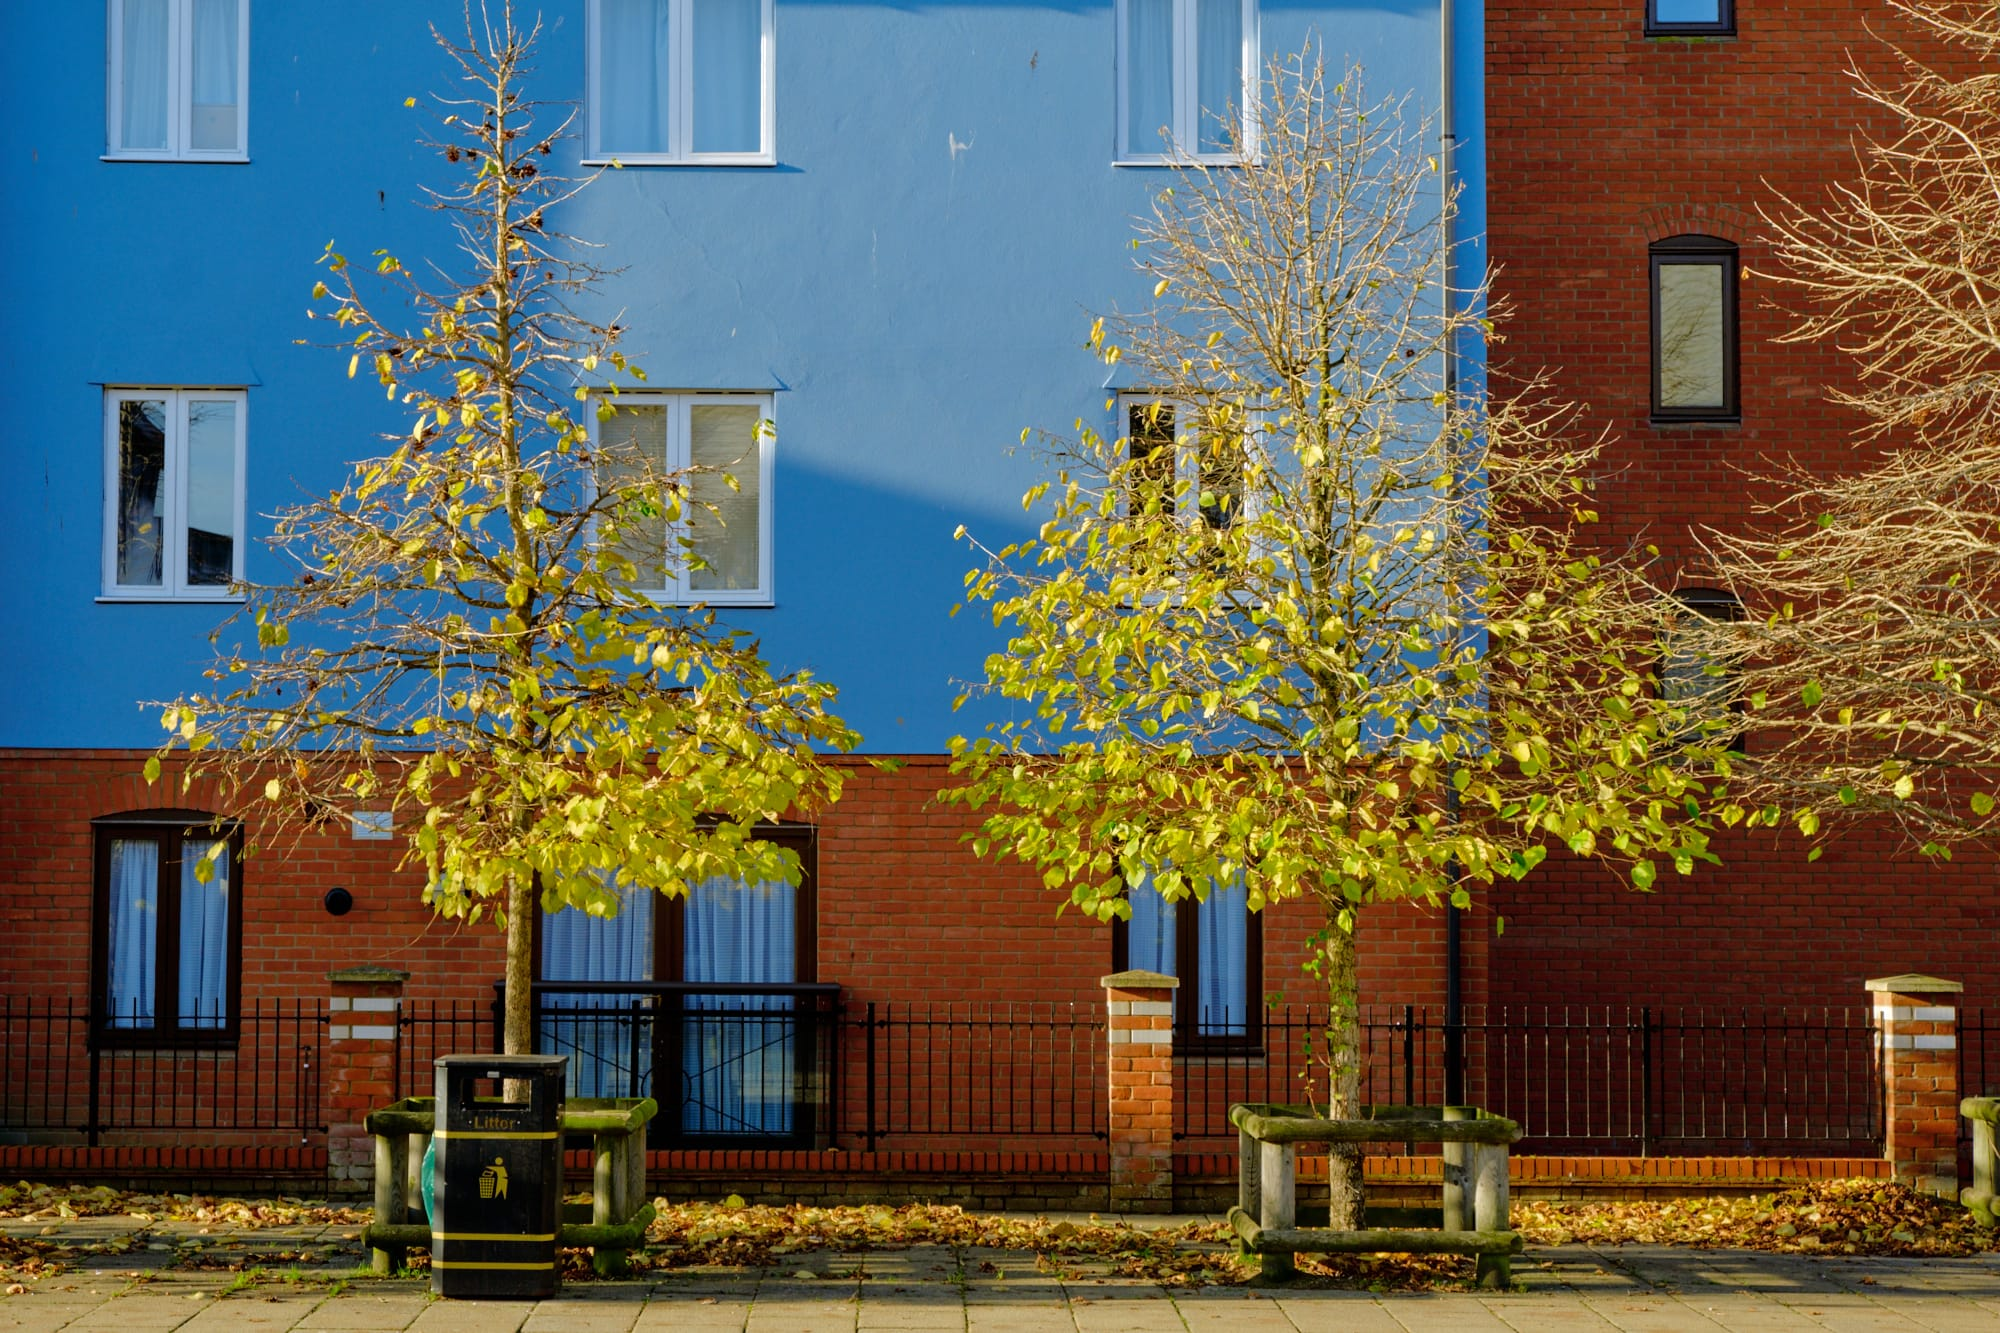 green and yellow trees against blue and red walls